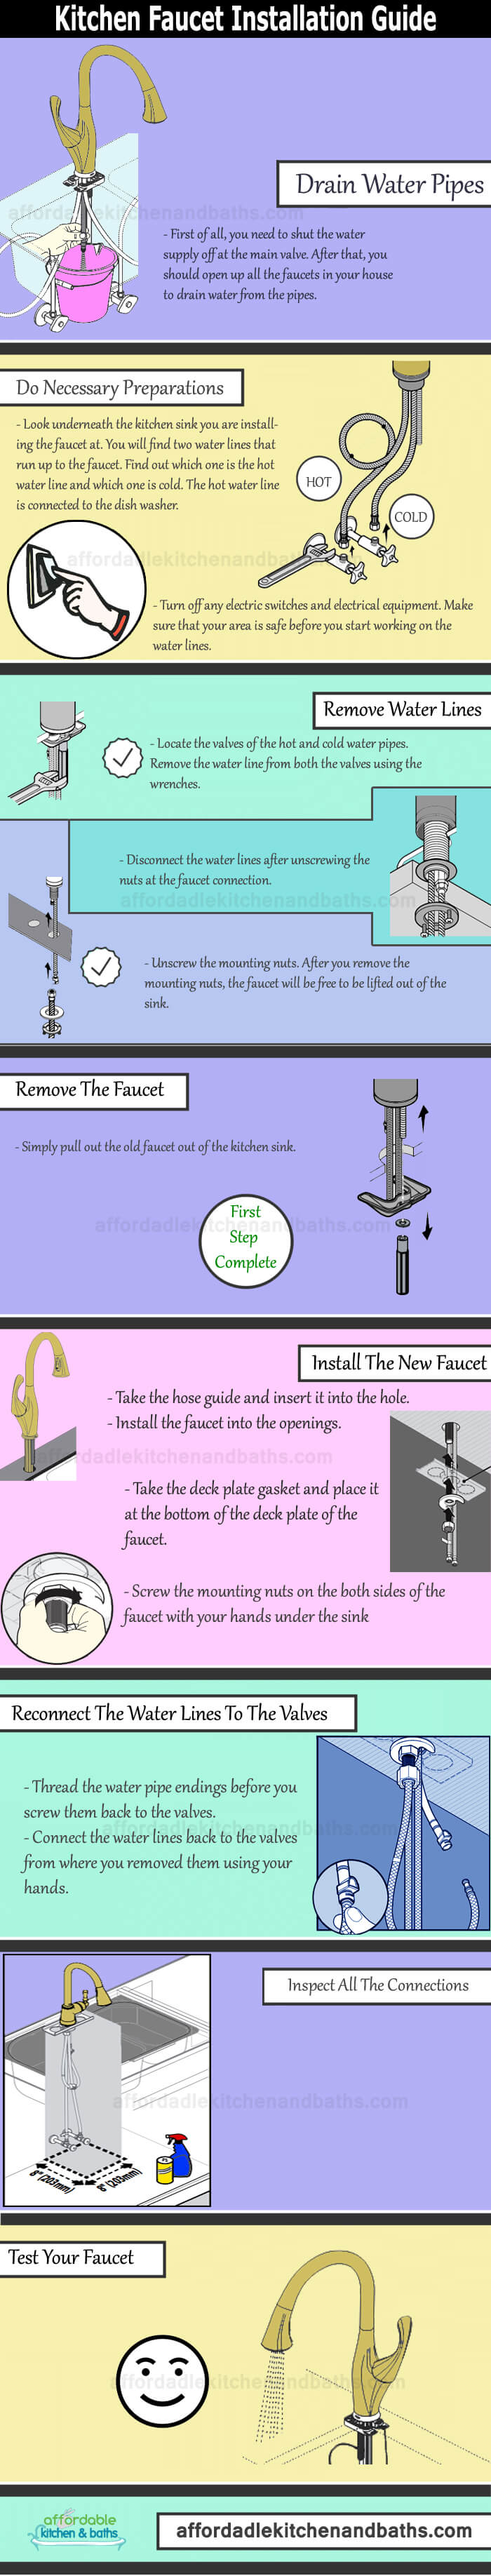 Kitchen Faucet Installation Guide